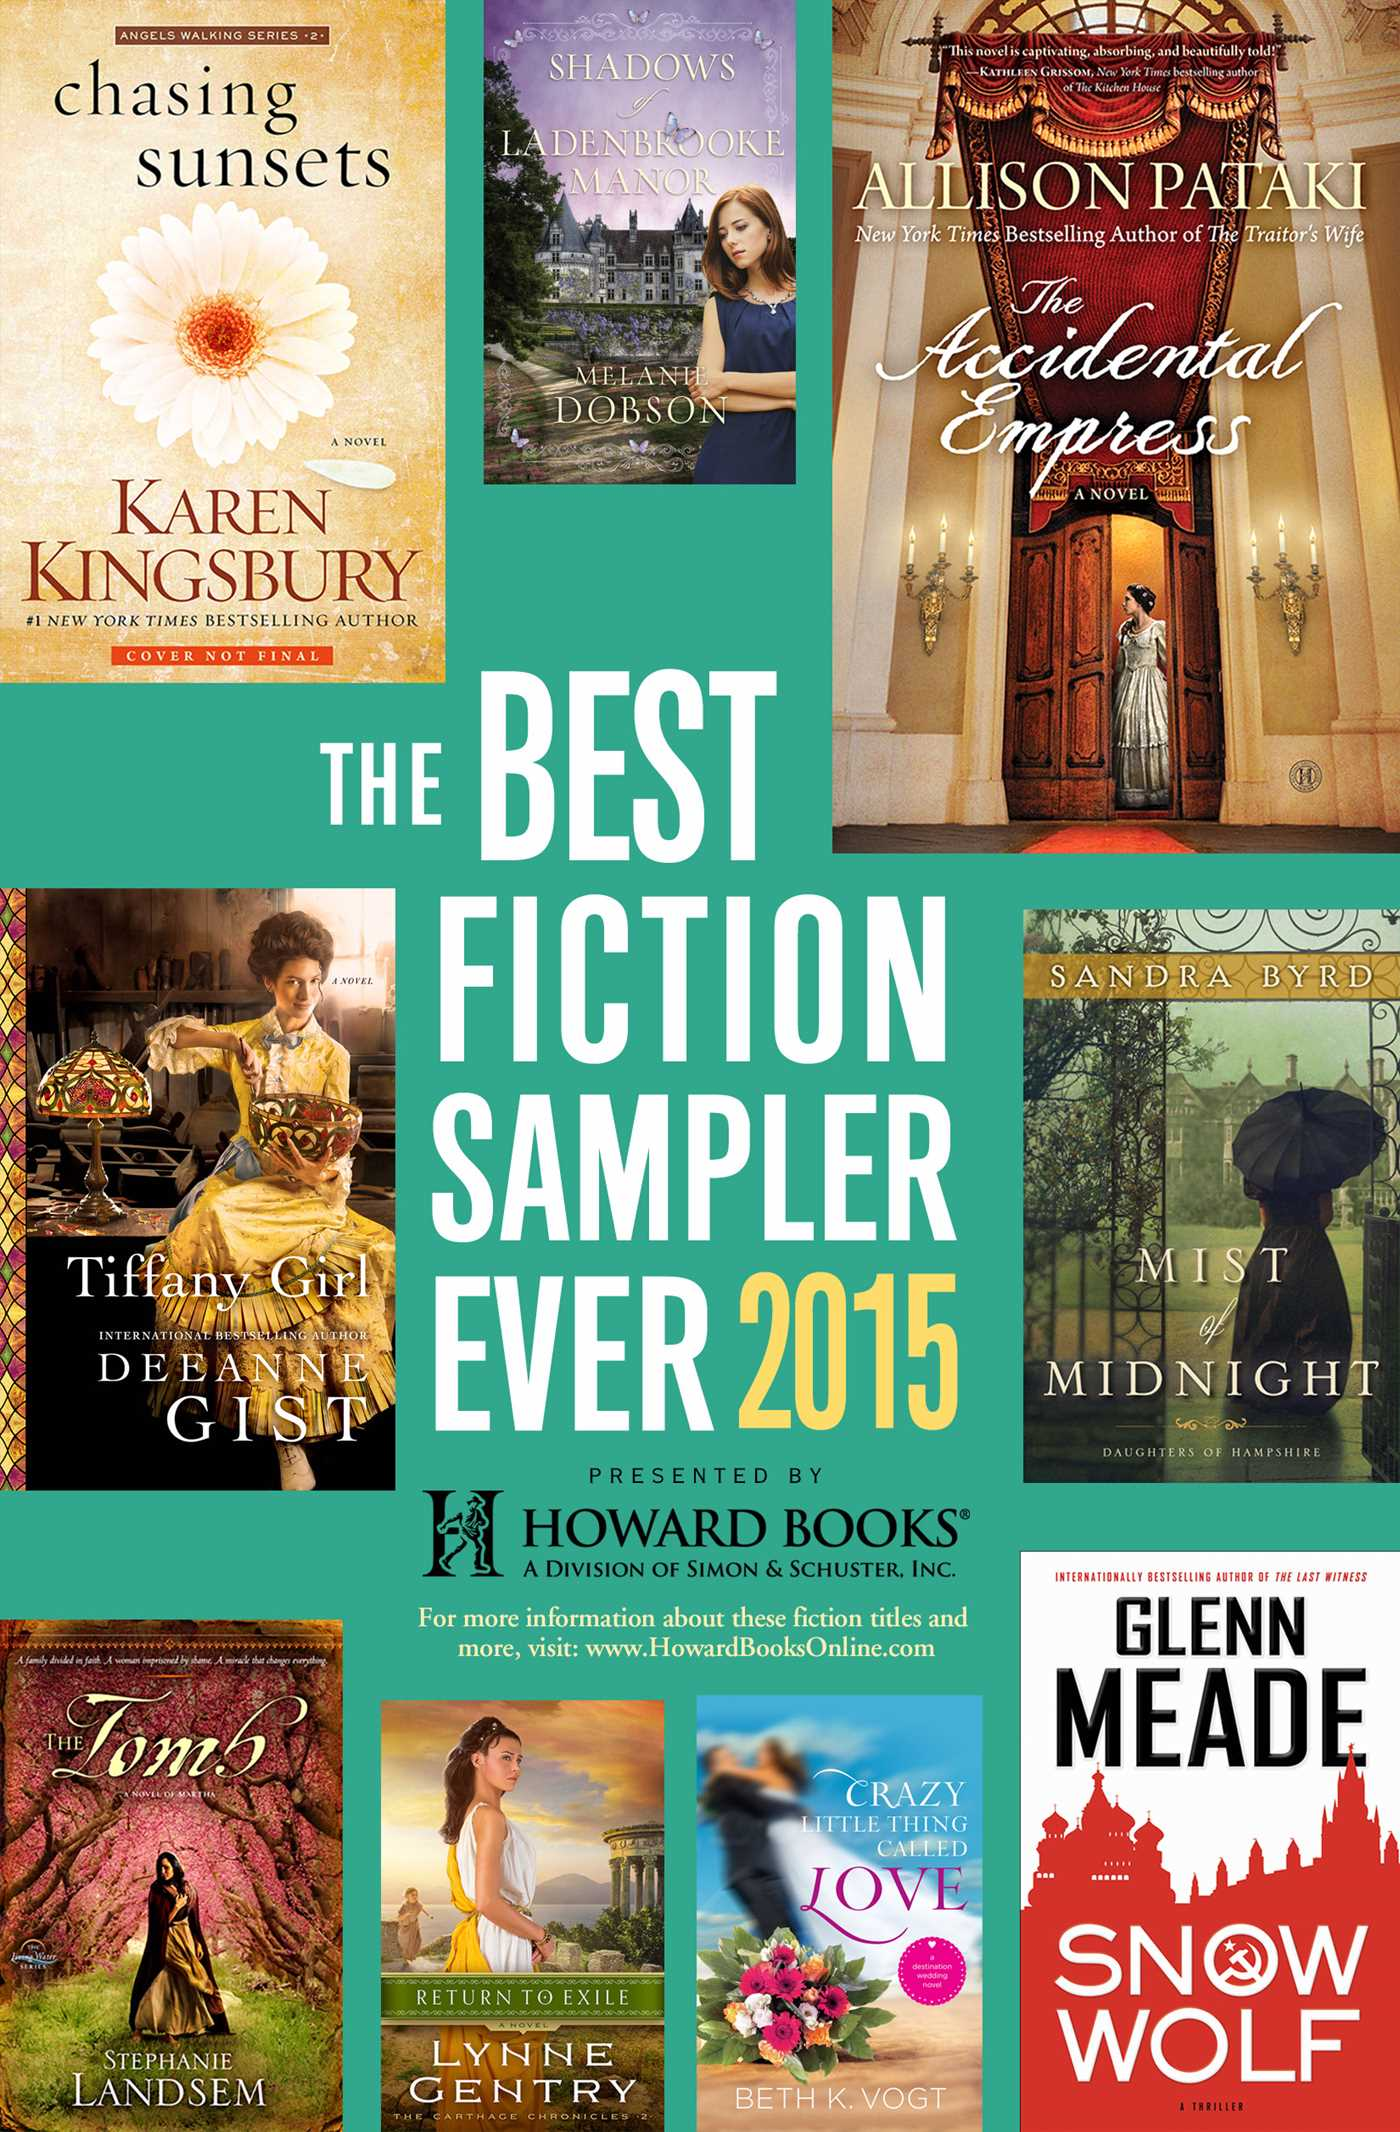 The best fiction sampler ever 2015 howard books 9781476790718 hr